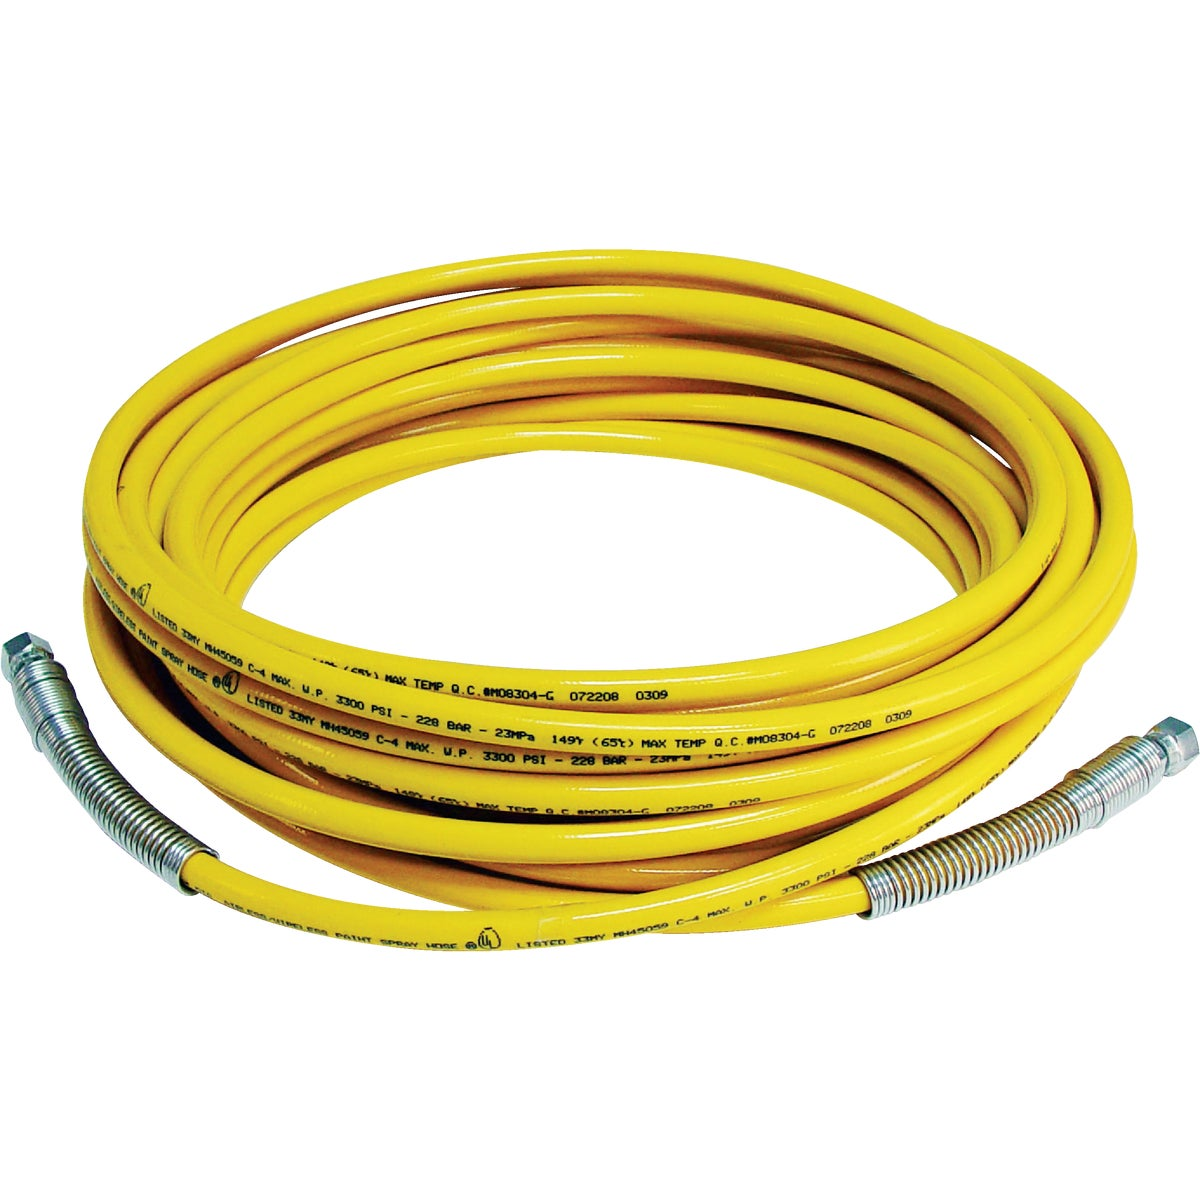 "1/4""X25' HIGH-PRESS HOSE"